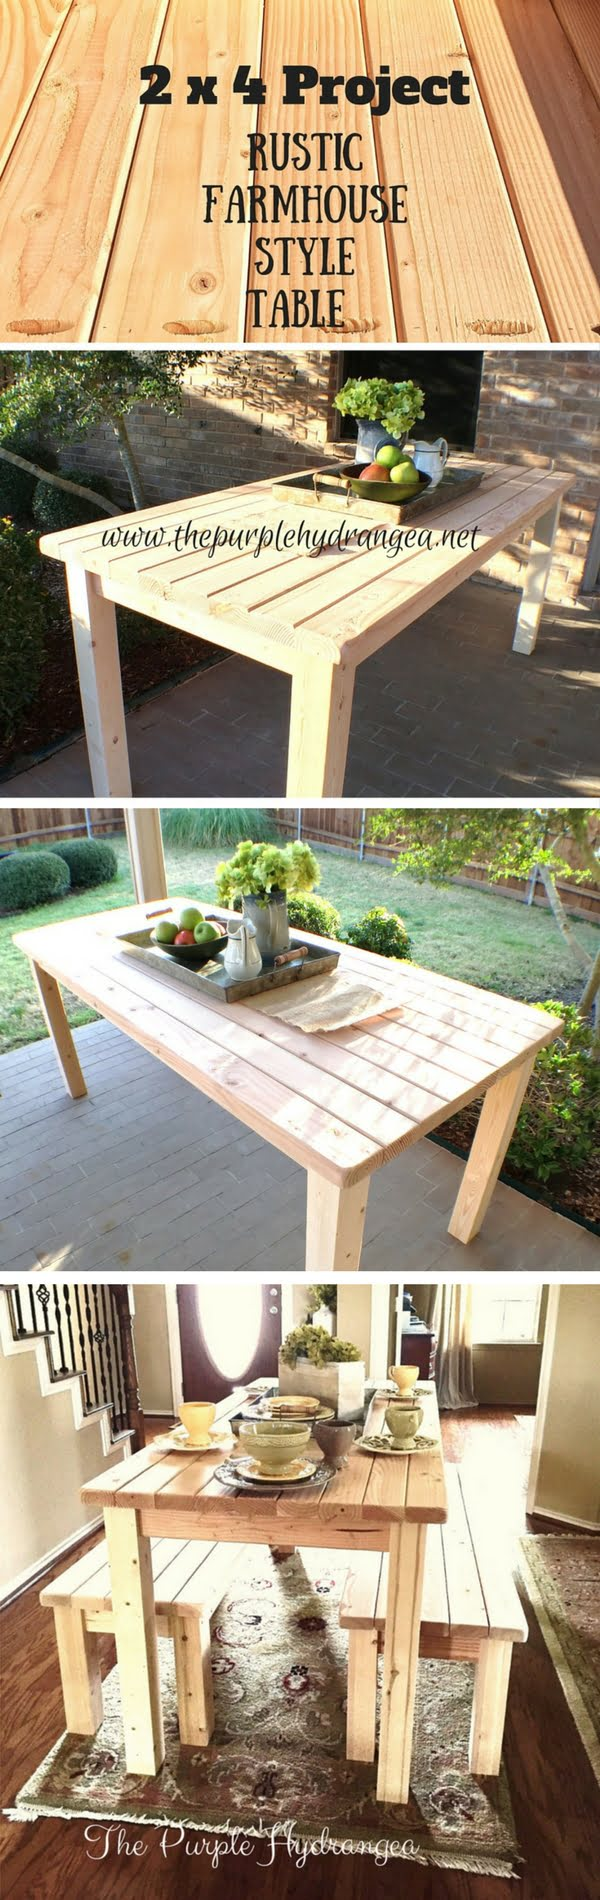 Check out how to make a DIY wooden farmhouse table from 2x4s